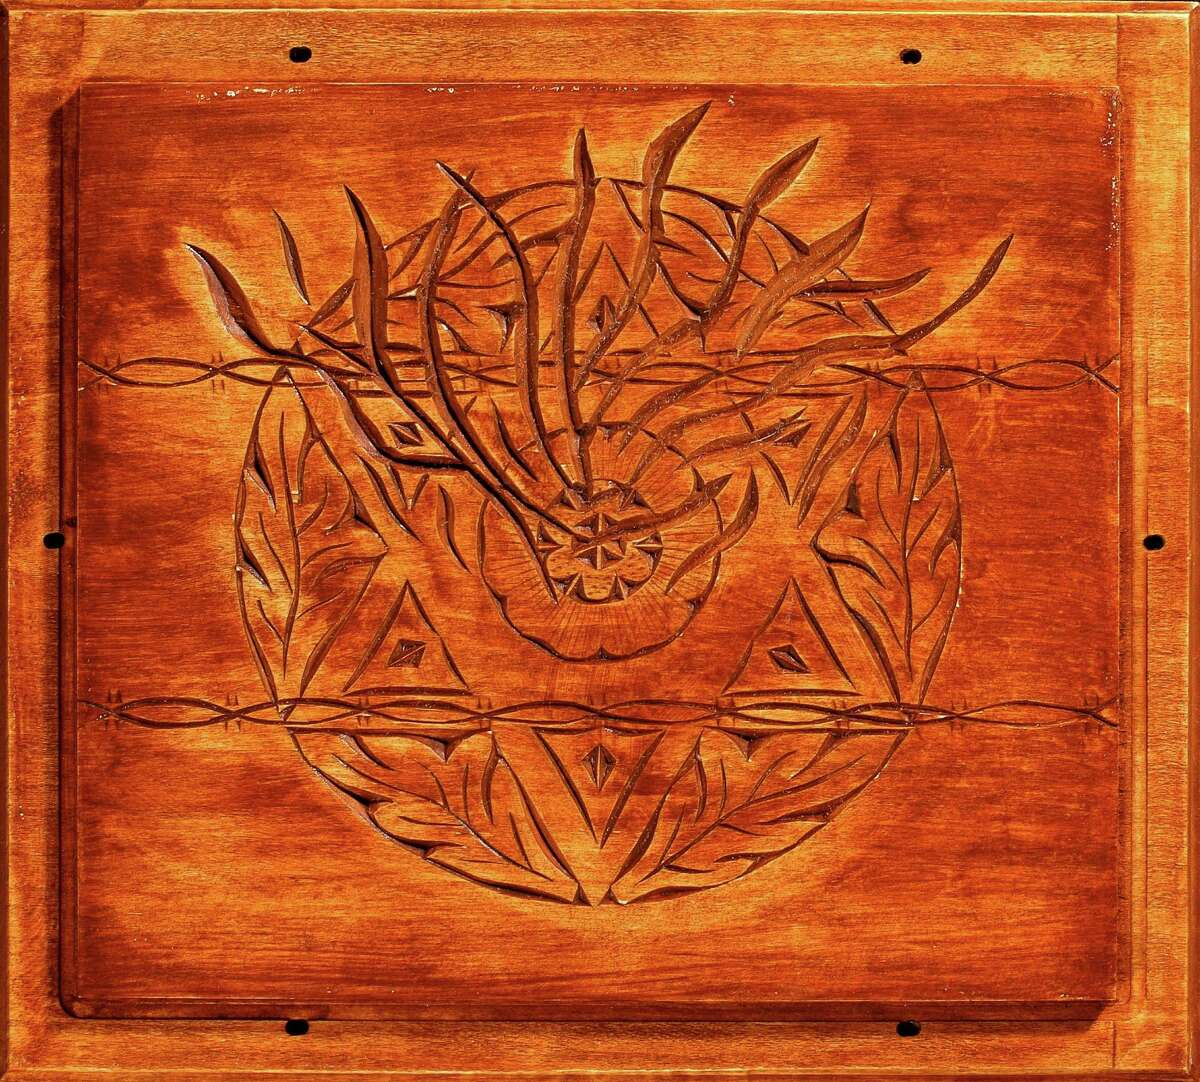 A collection of wood chip carvings by Harvey Paris is on exhibit at the Easton Public Library through June 30. Above the Star of David is overwhelmed by fire and barbed wire.